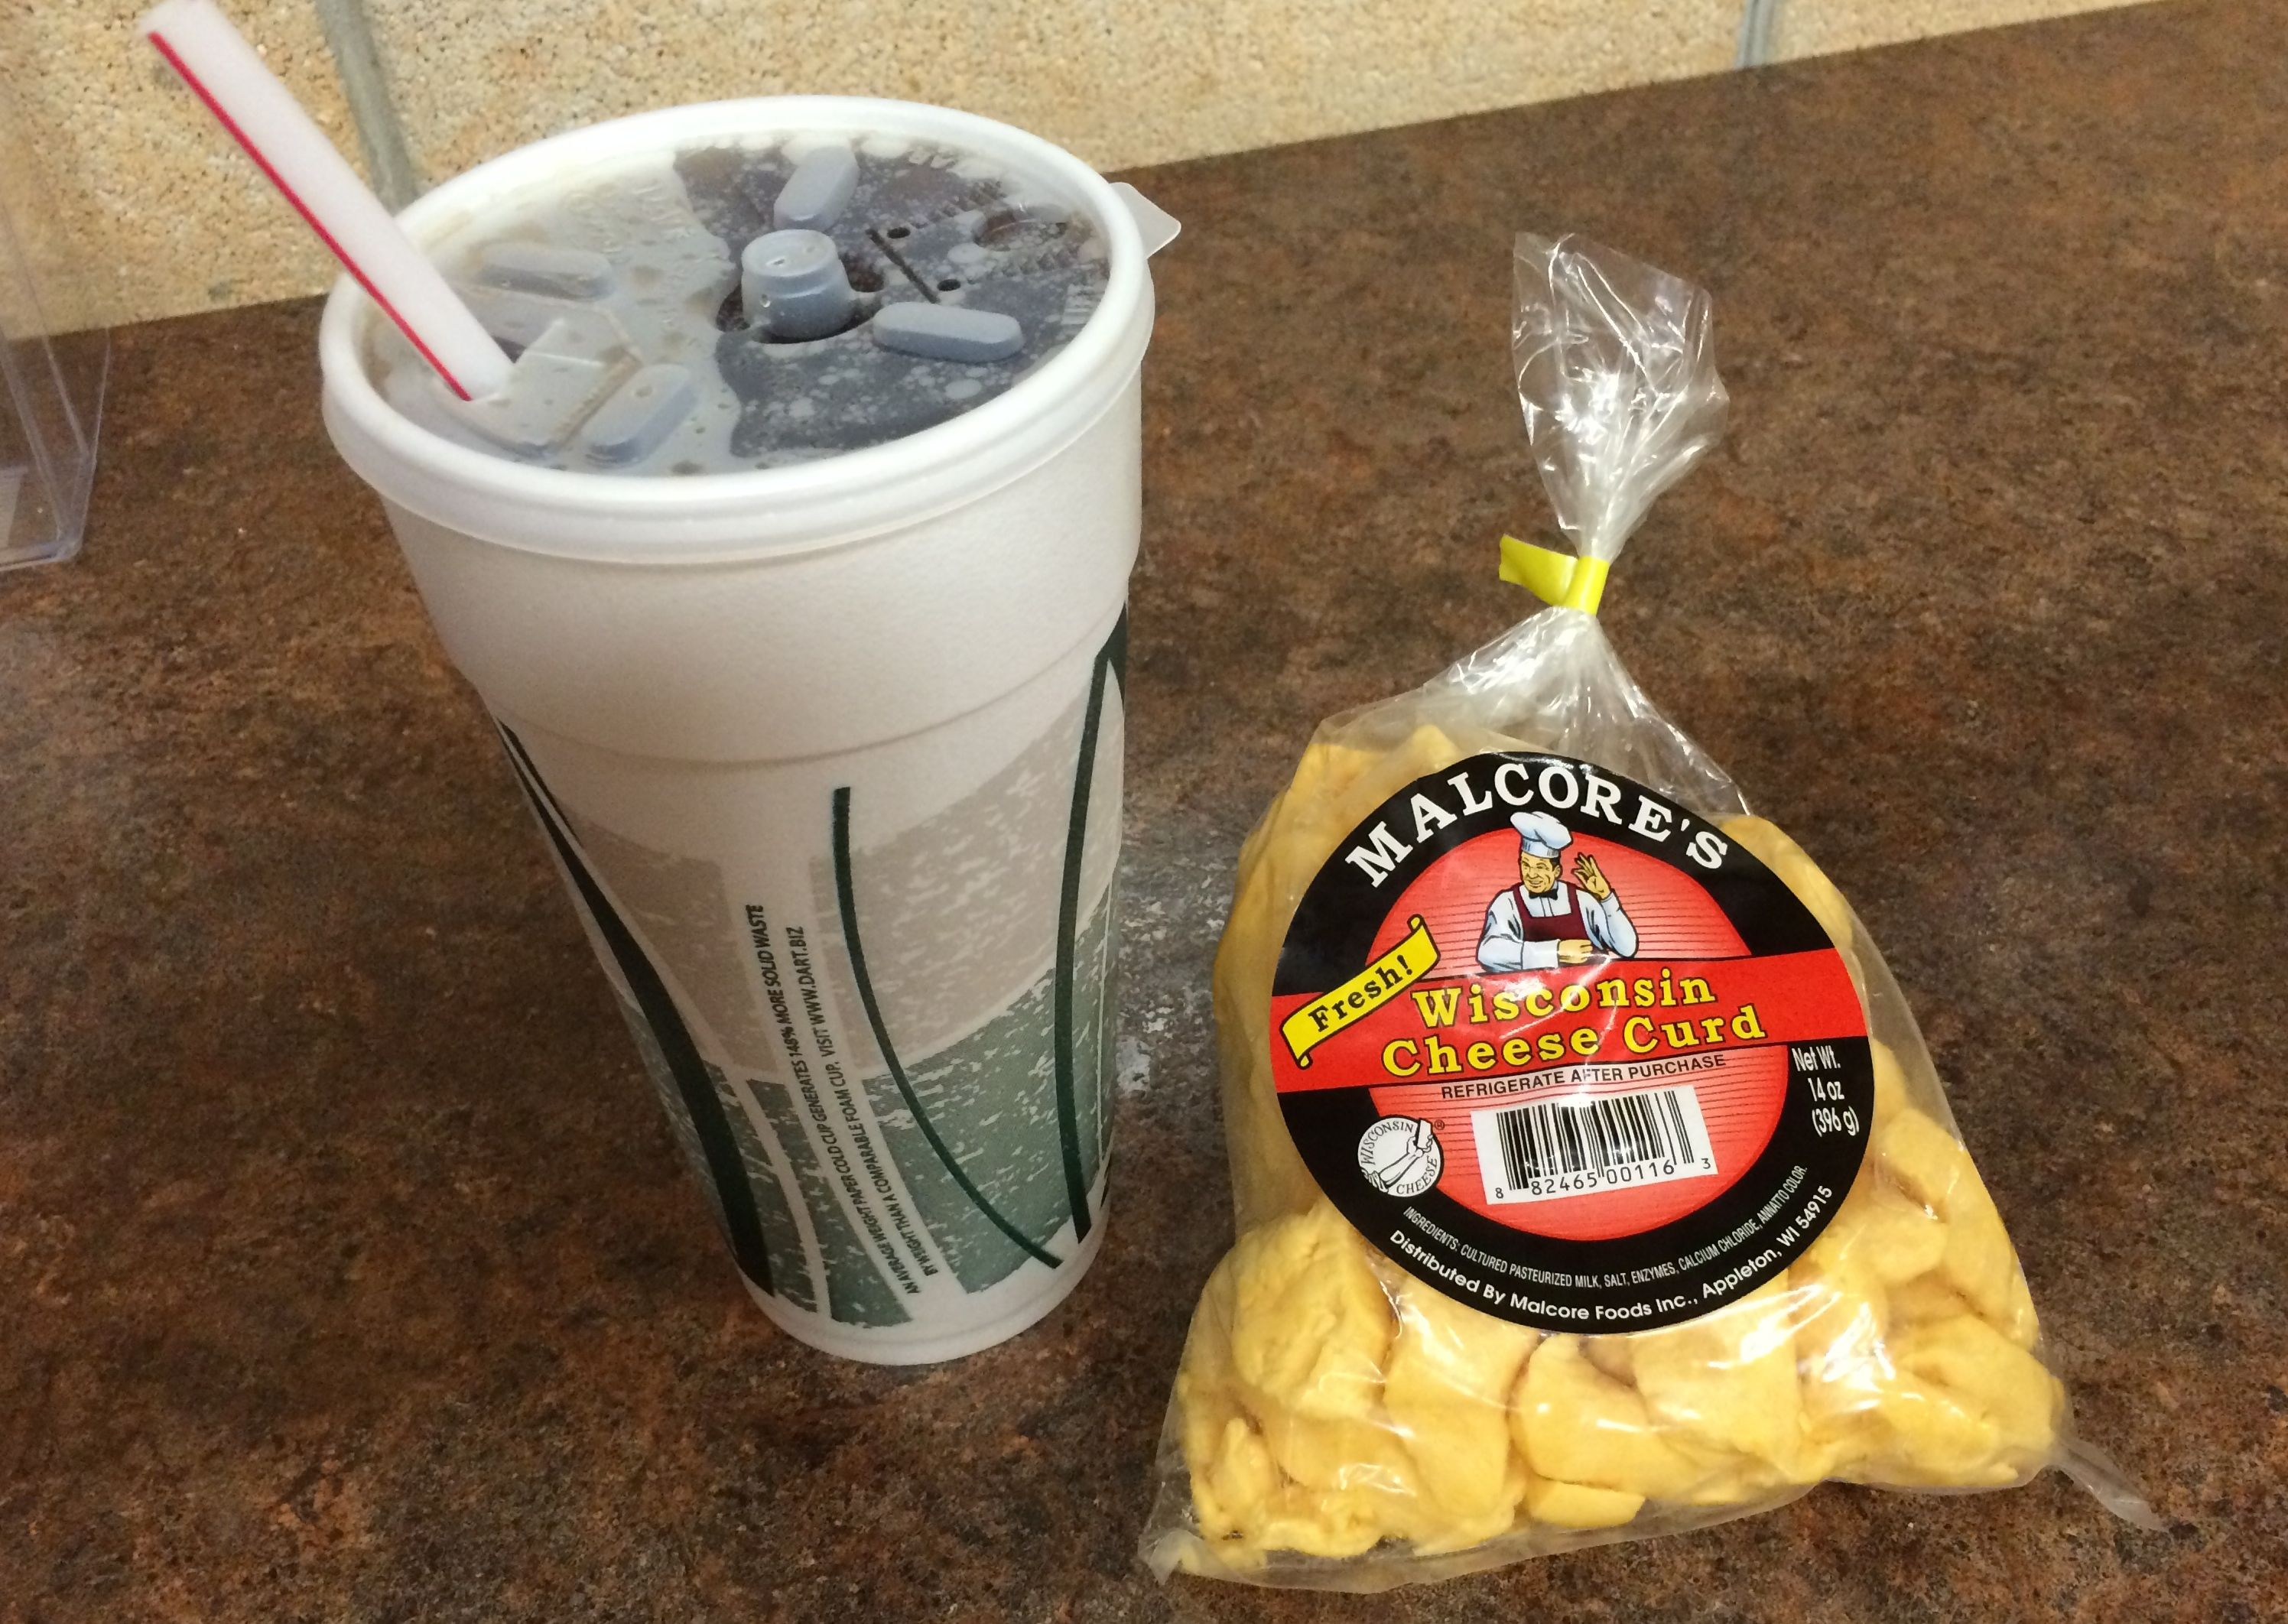 What's for lunch? A bag of cheese and a Diet Coke.